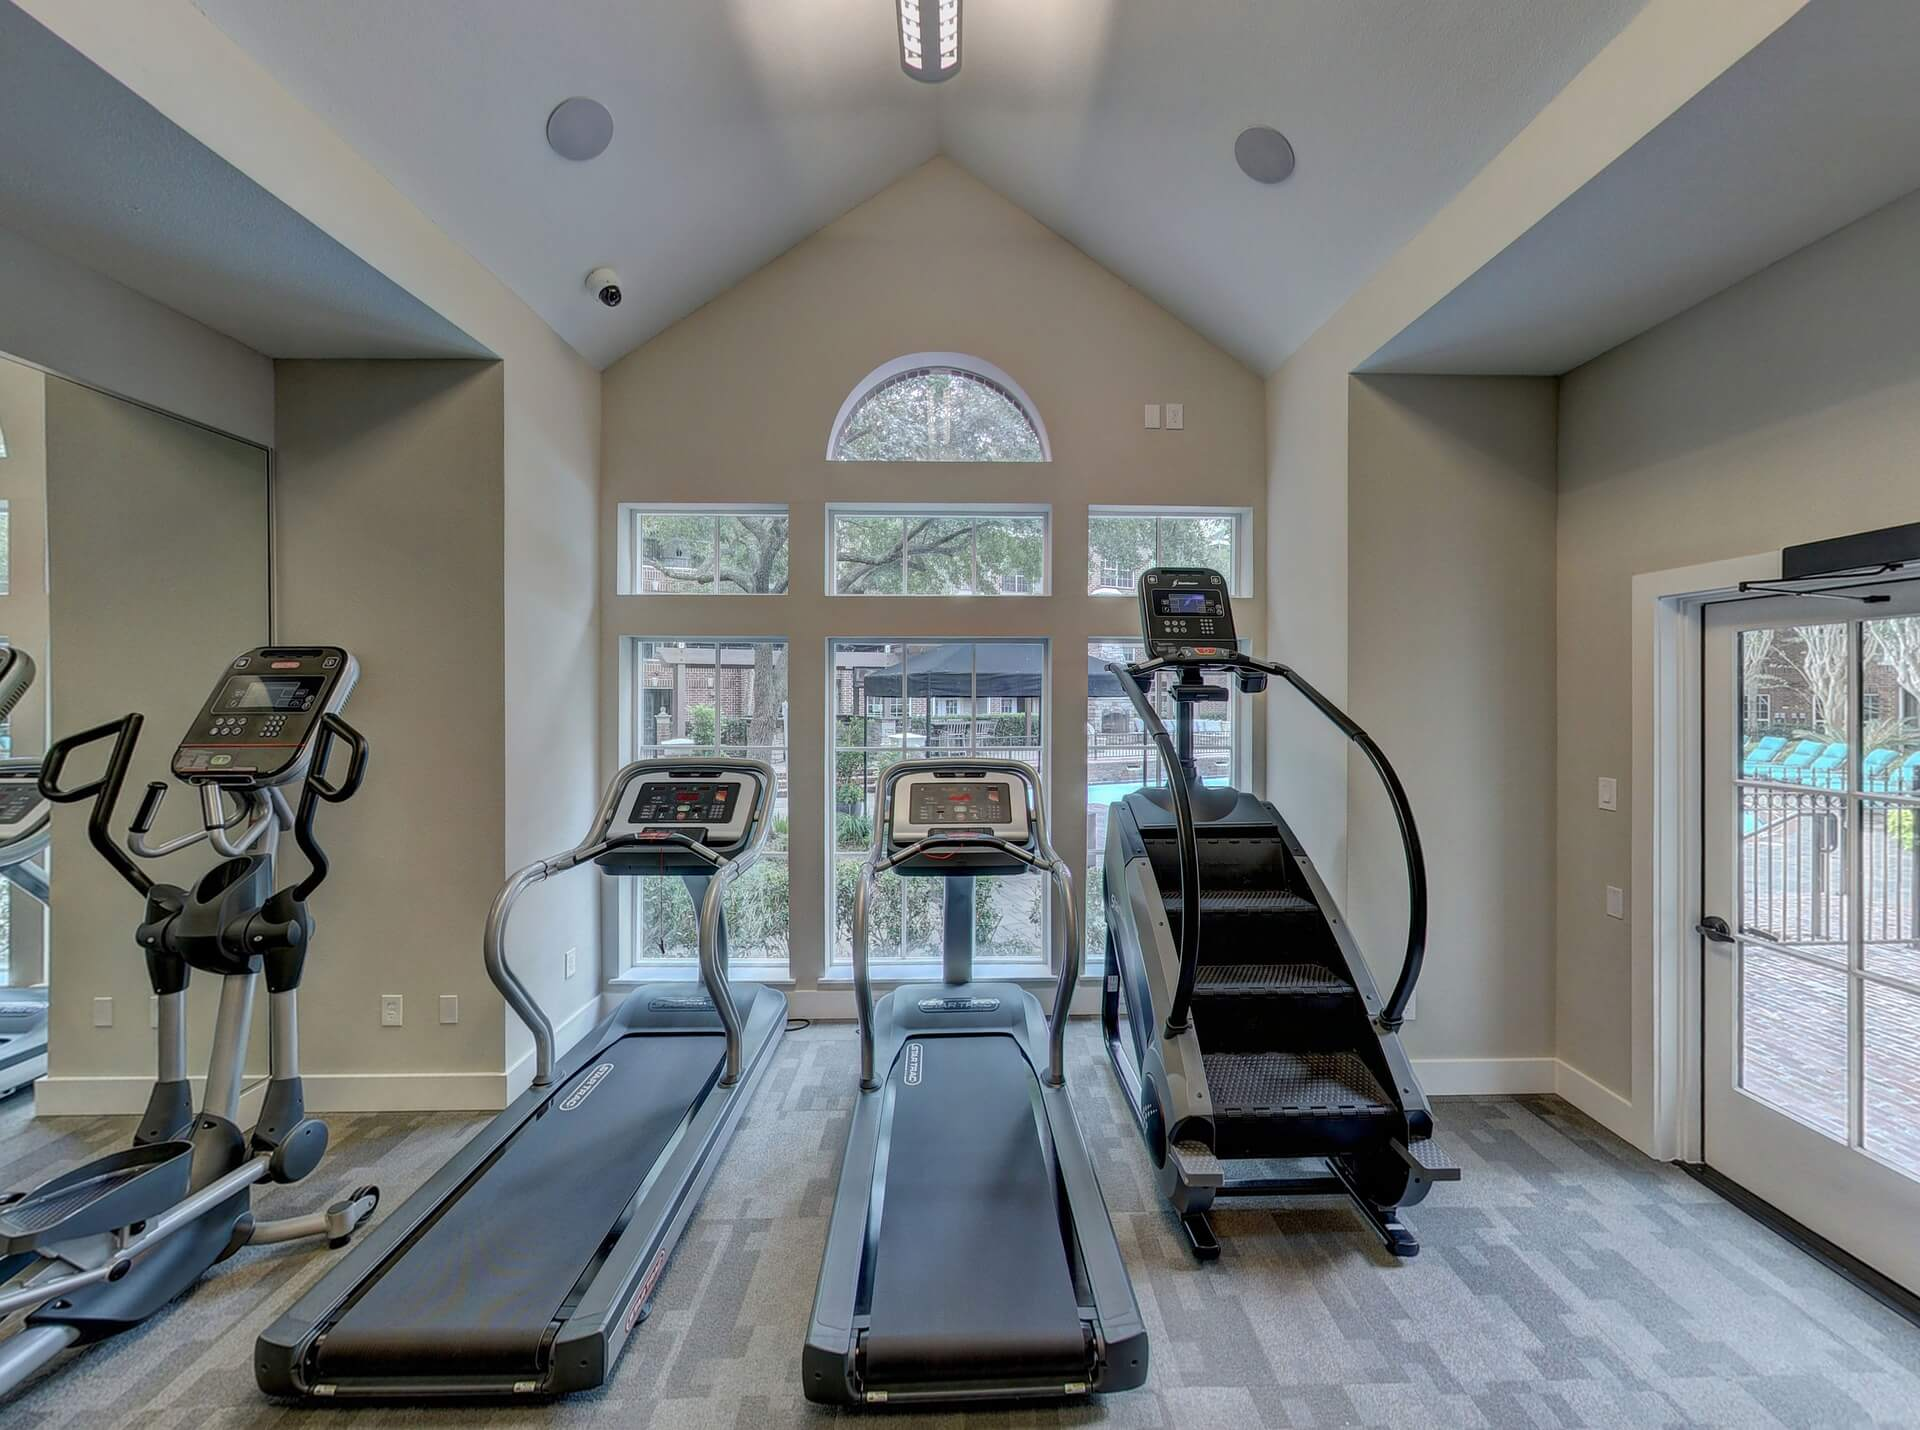 How Do You Fit a Treadmill in a Small Apartment, Read the Article to get the Answer